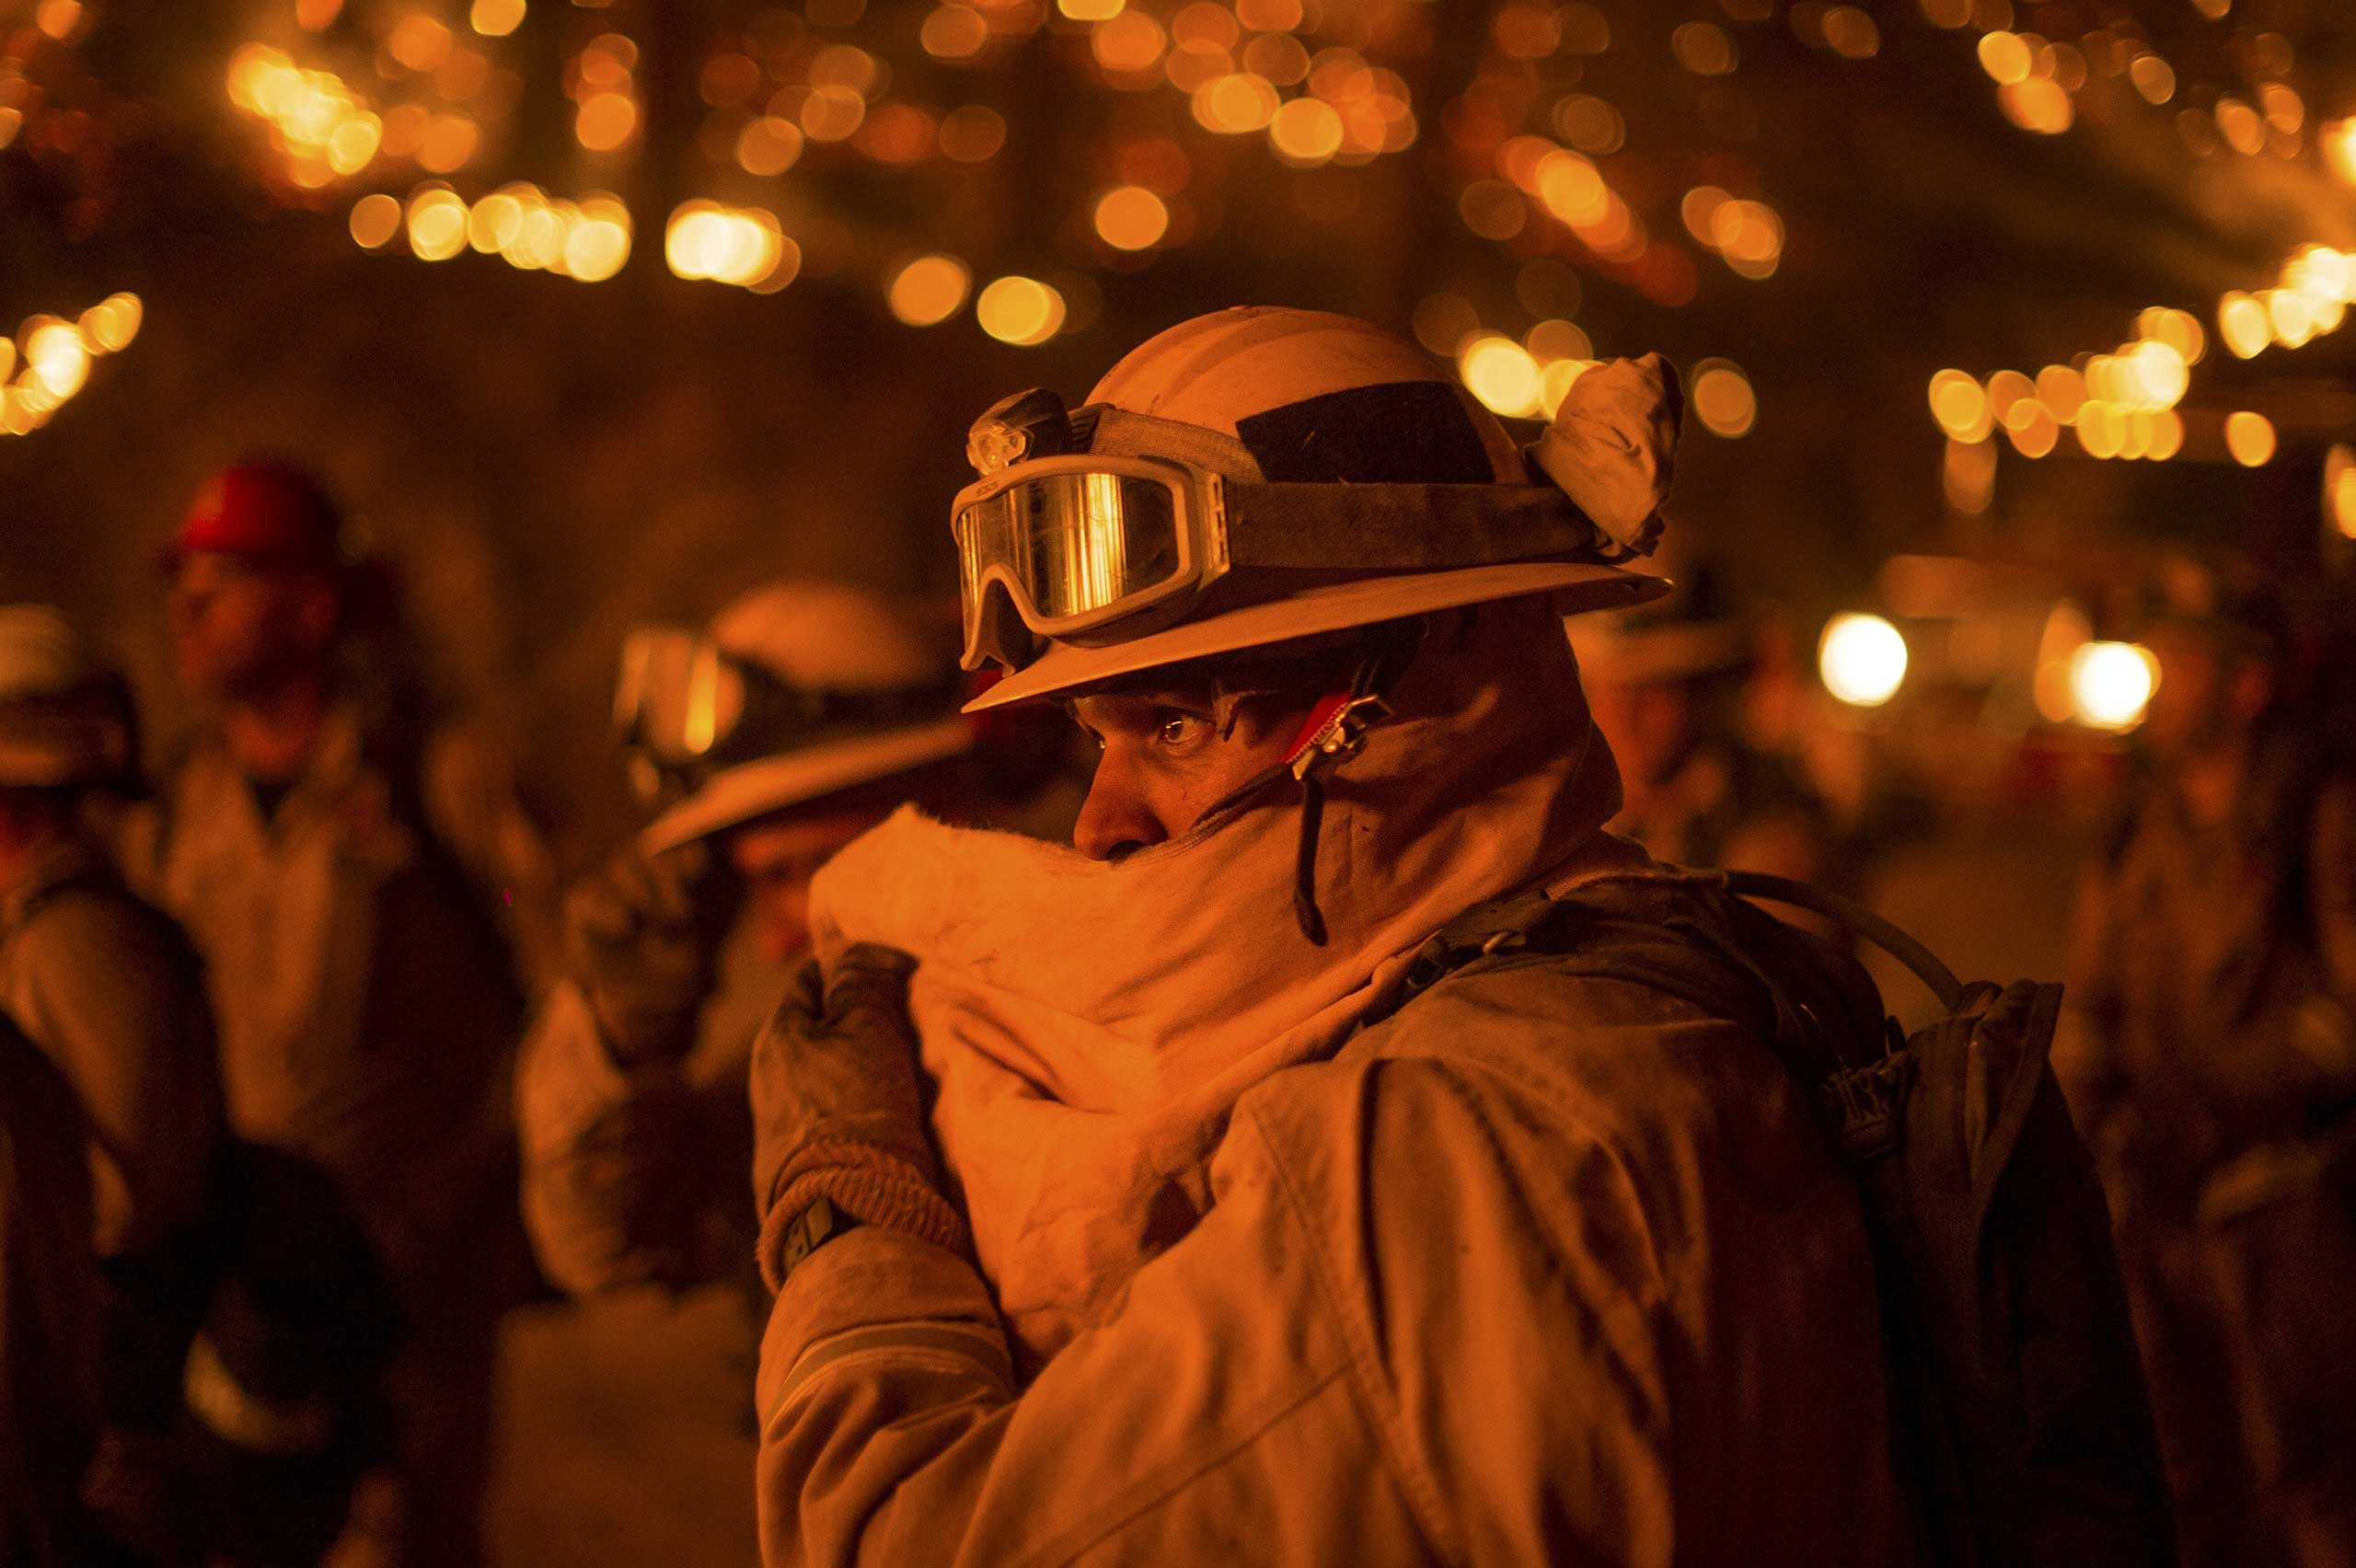 A firefighter covers his face while battling the Butte fire near San Andreas, California September 12, 2015.